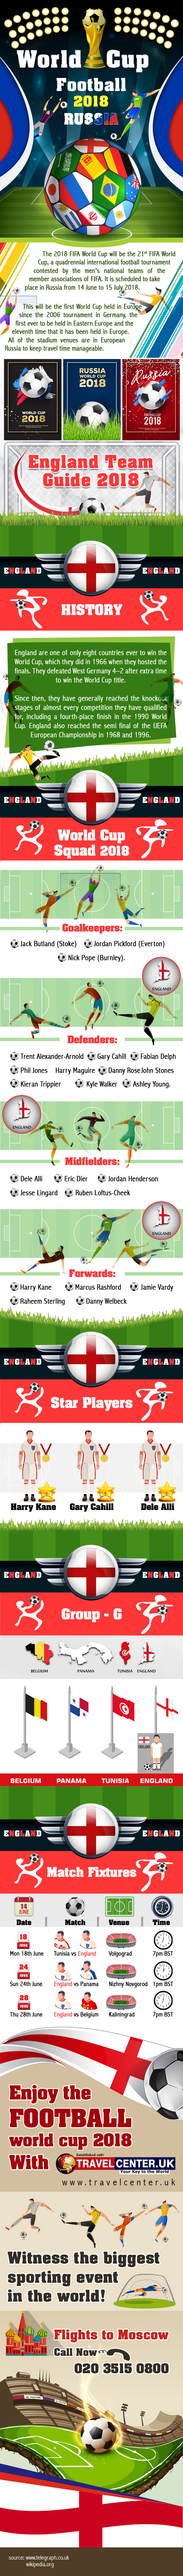 World Cup 2018 Russia - England Team Guide